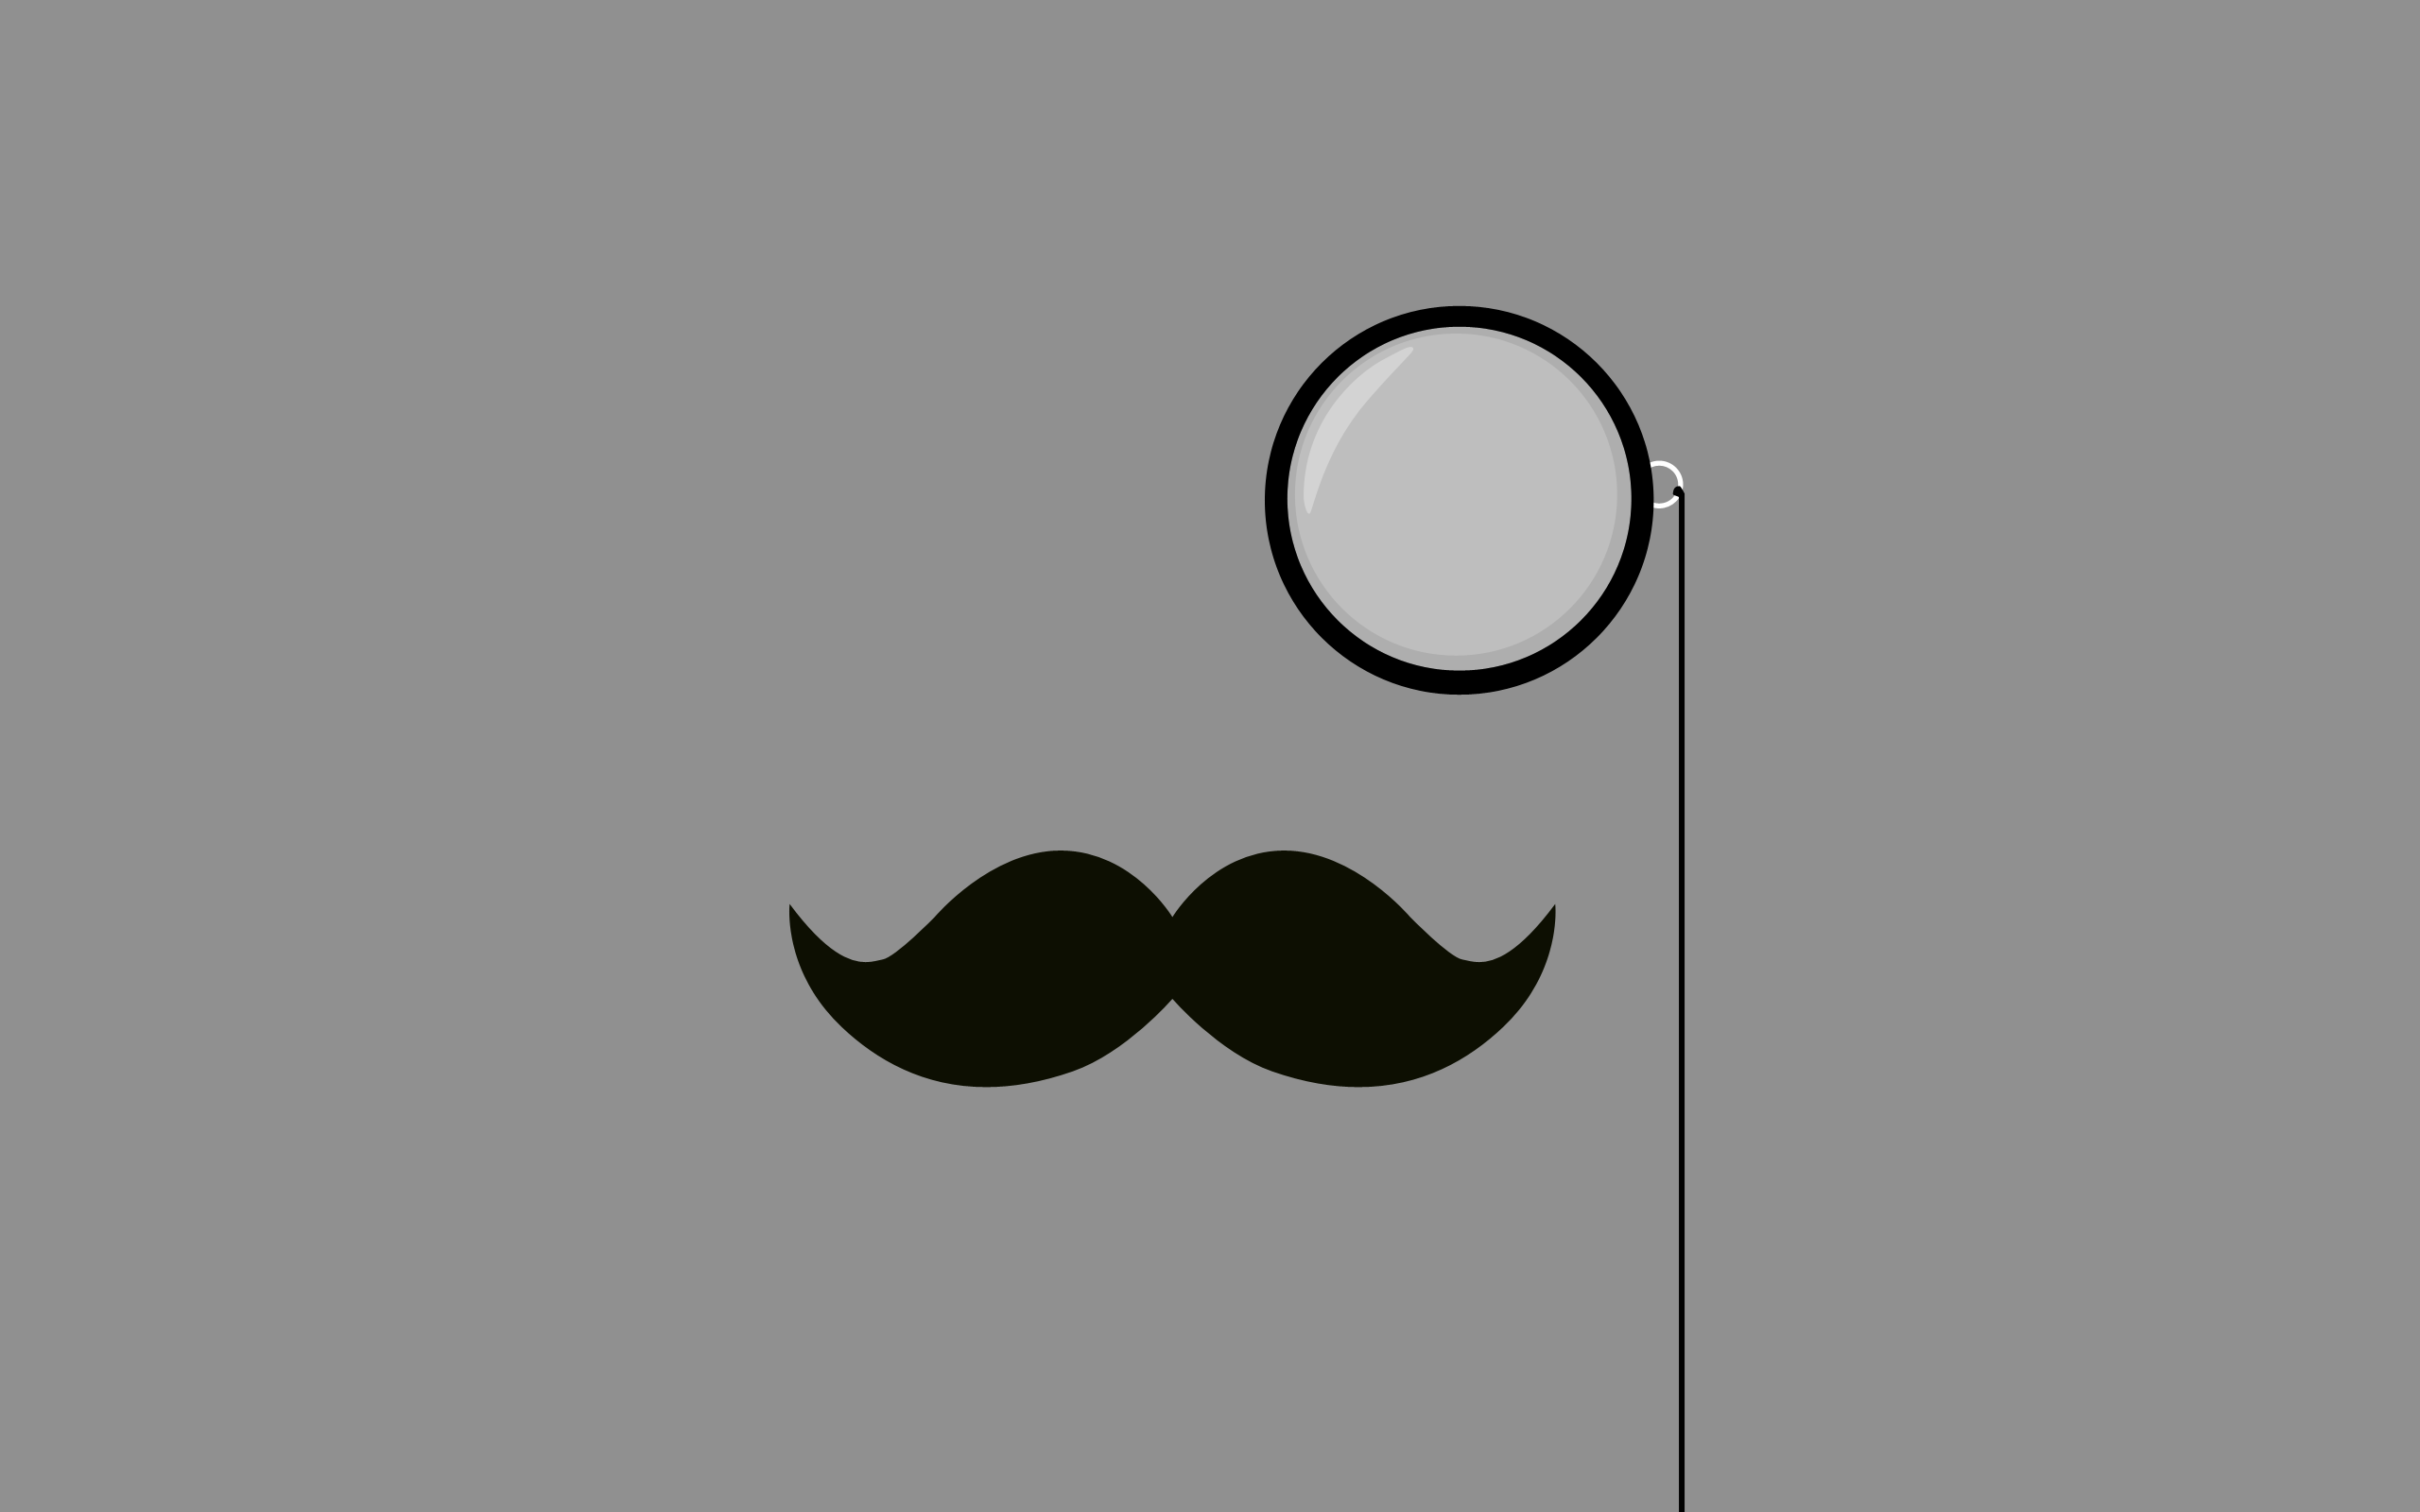 Monocle_gray.original